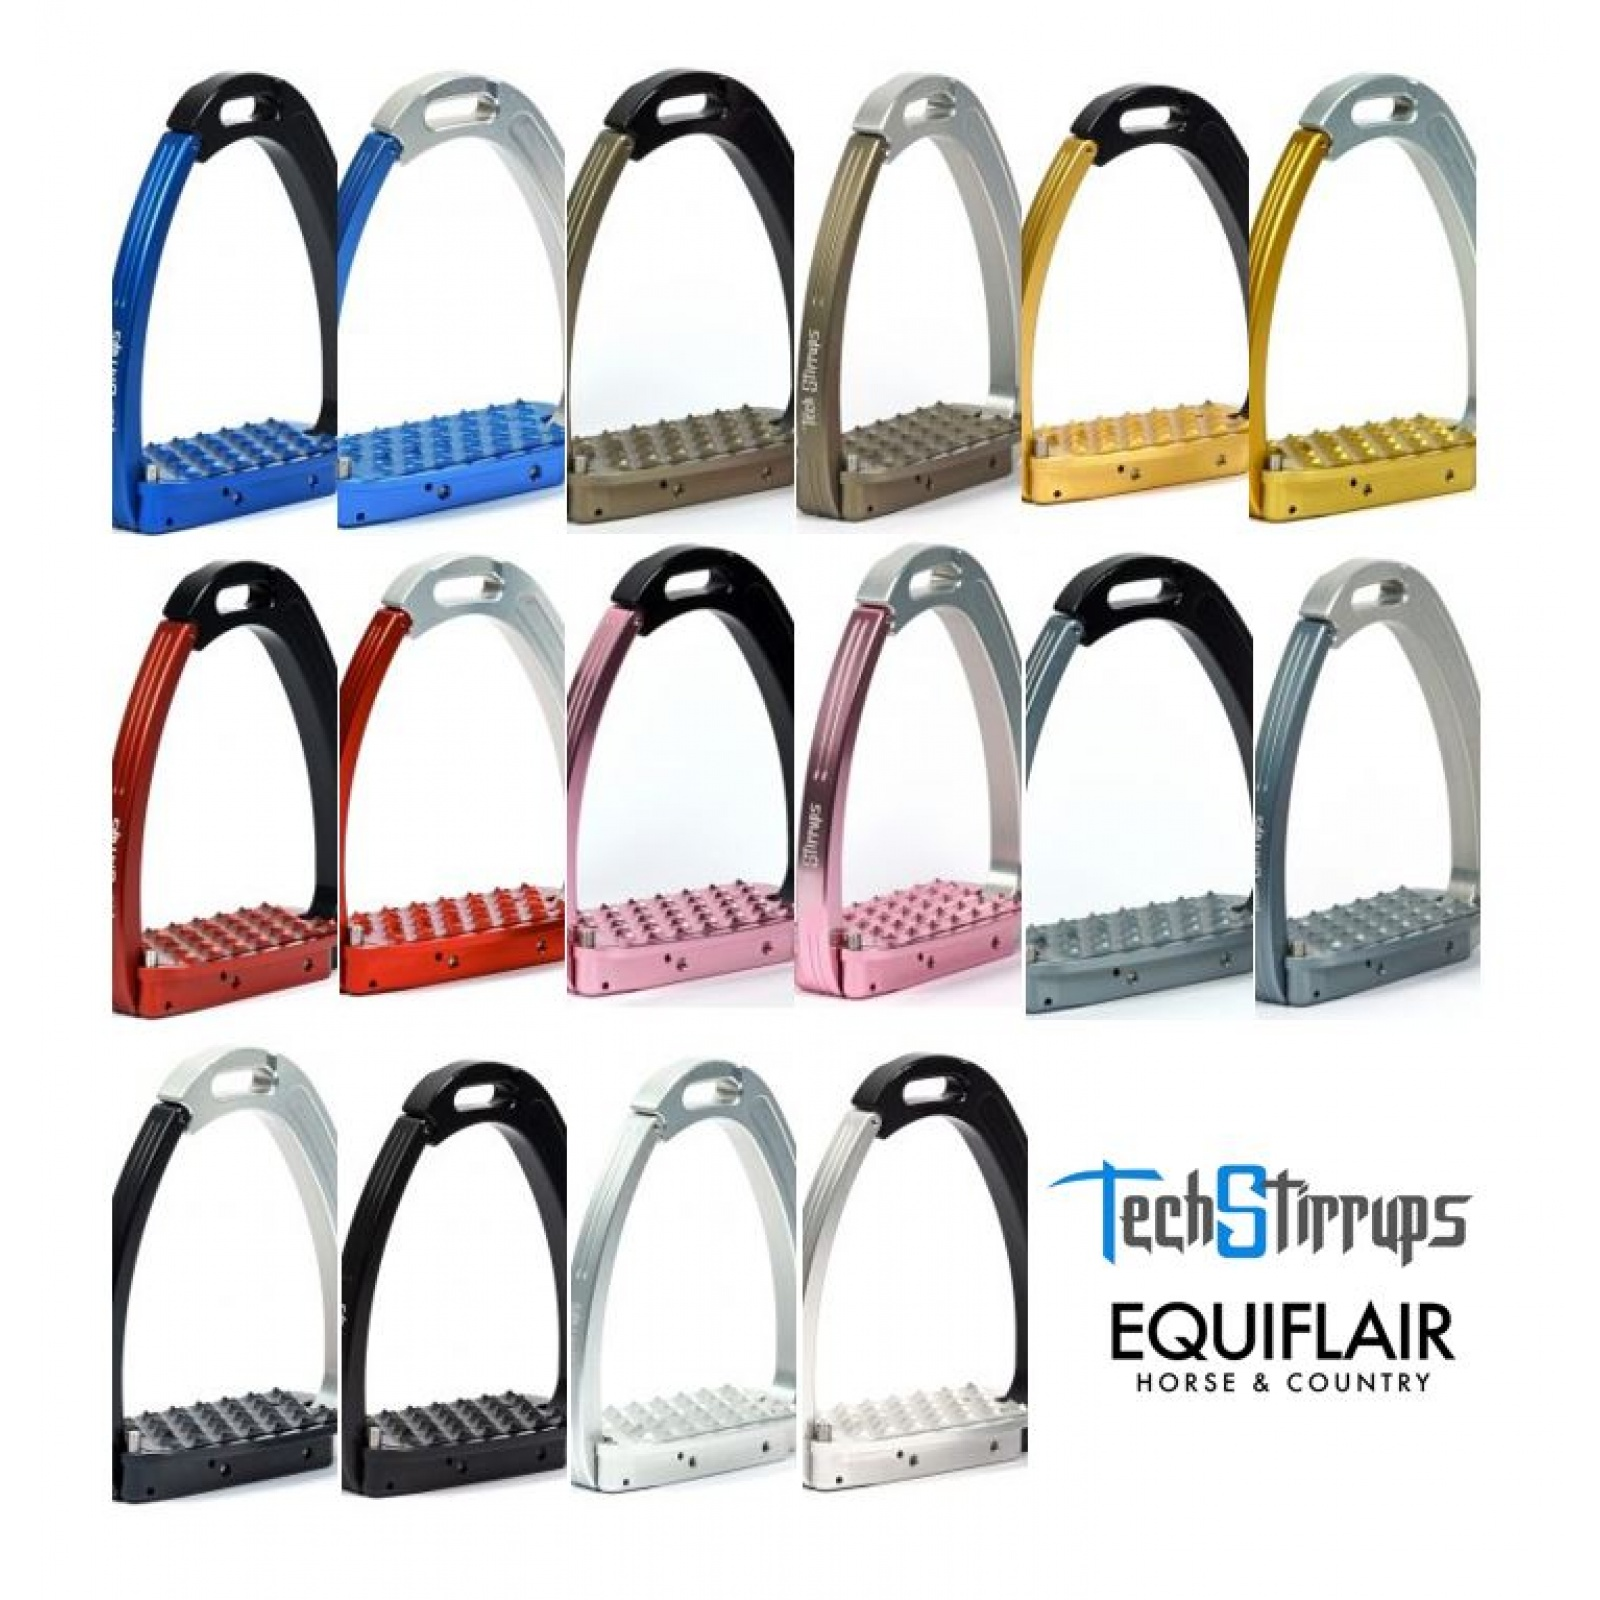 Tech-Stirrups-Venice-YOUNG-Safety-Stirrup-Irons-with-Foot-Release-ALL-COLOURS miniature 3